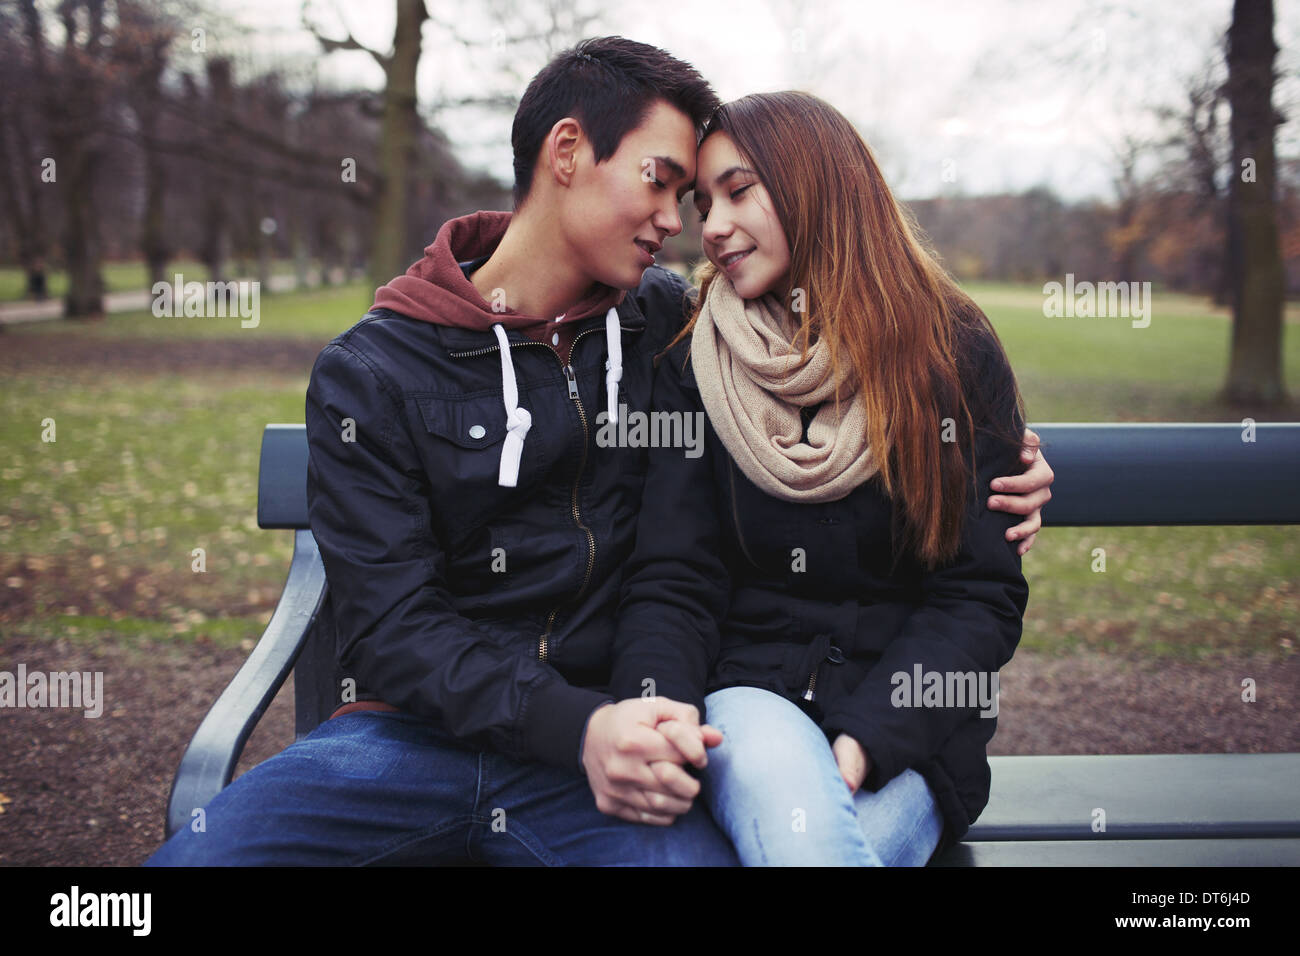 Young couple sharing a tender moment while sitting on a park bench. Teenage asian couple outdoors in park. - Stock Image